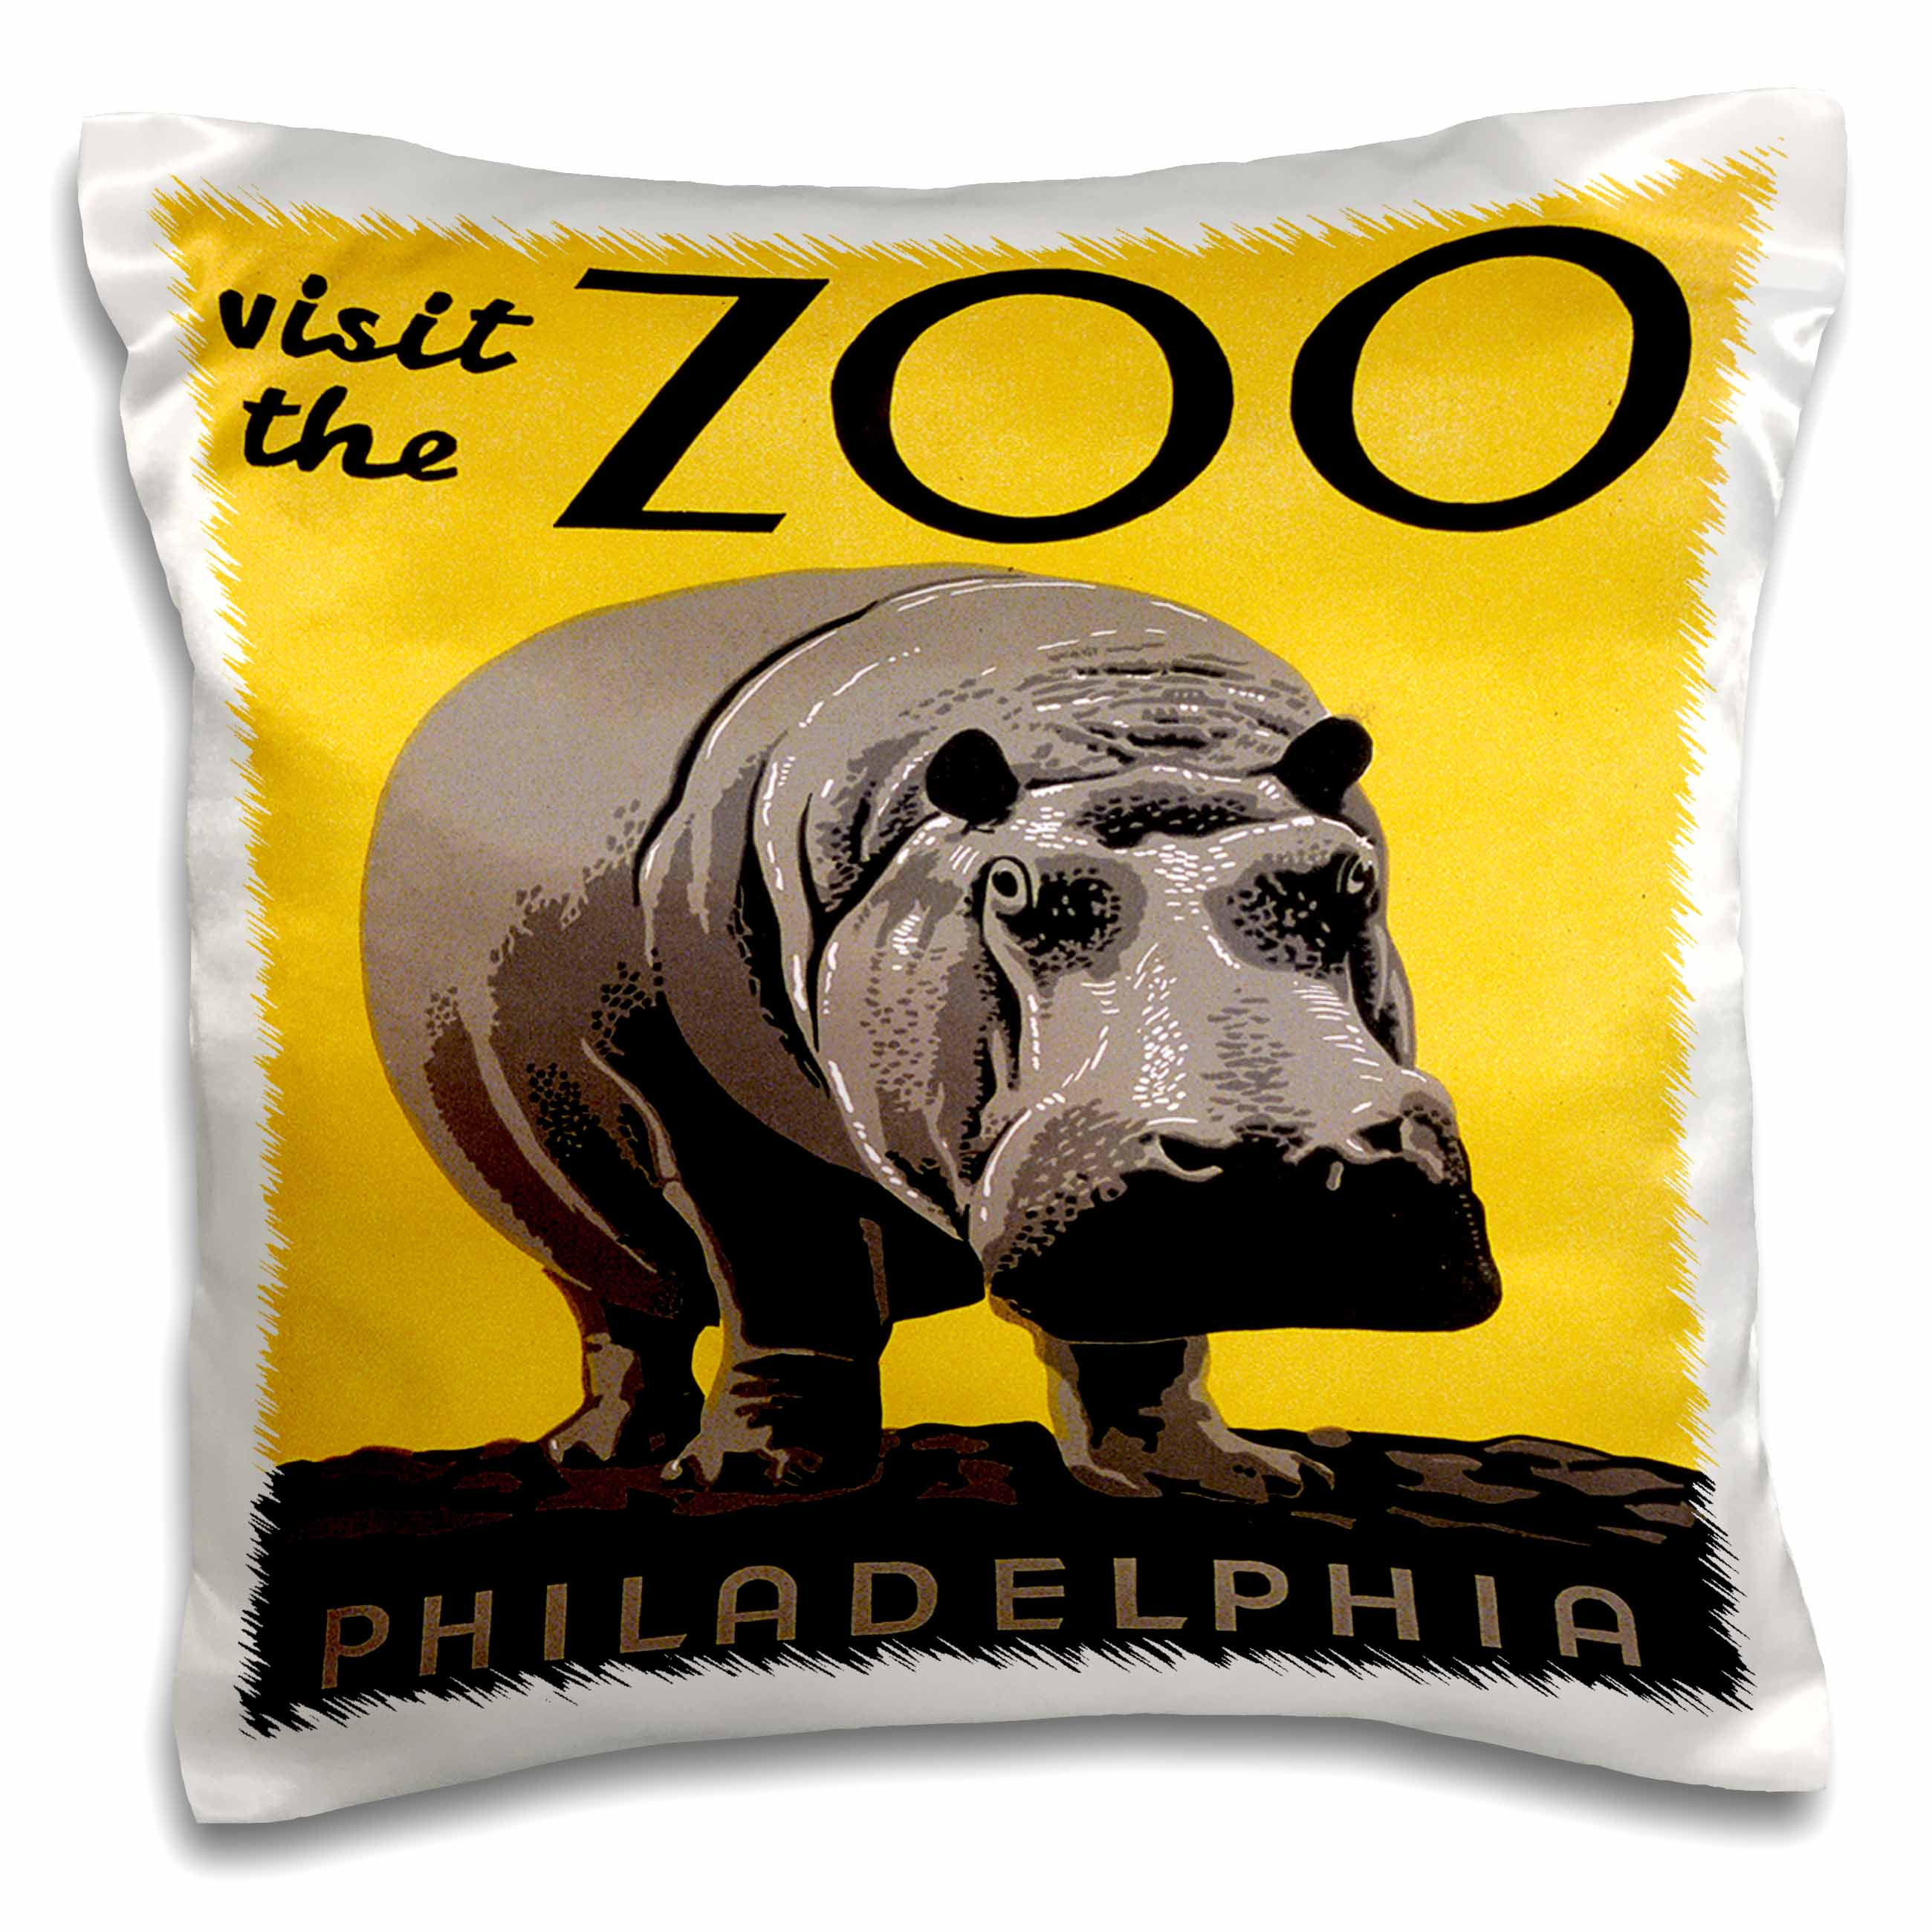 3dRose Visit the Zoo Philadelphia with Large Hippo on Yellow Background, Pillow Case, 16 by 16-inch